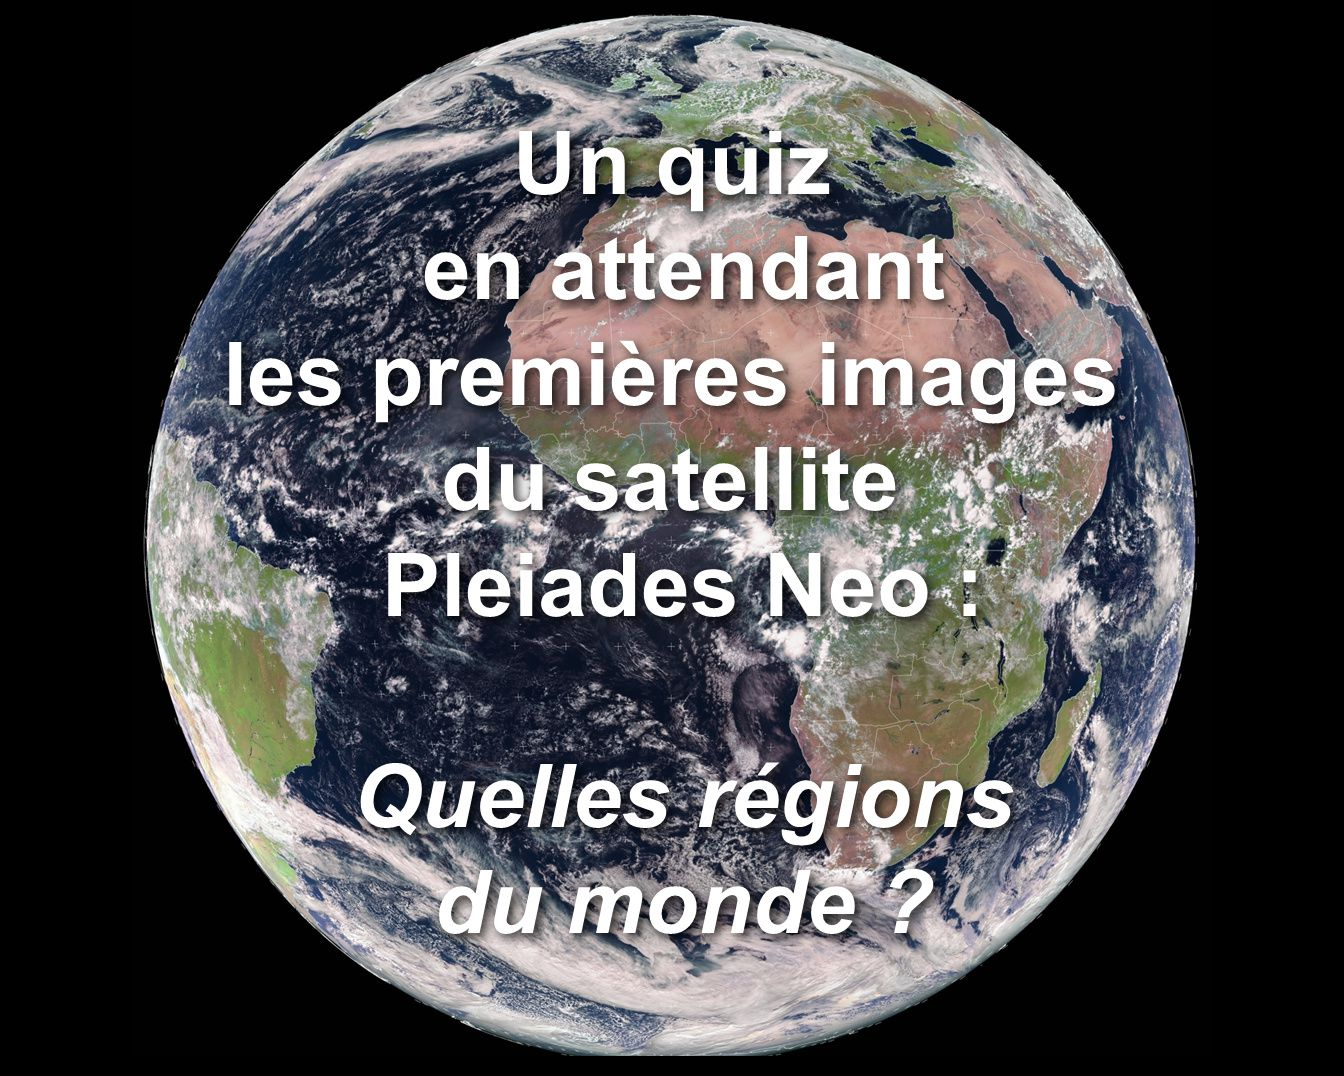 Pleiades Neo - Pléiades Neo - First image - Première image - Airbus Defence and Space - satellite - 30 cm imagery